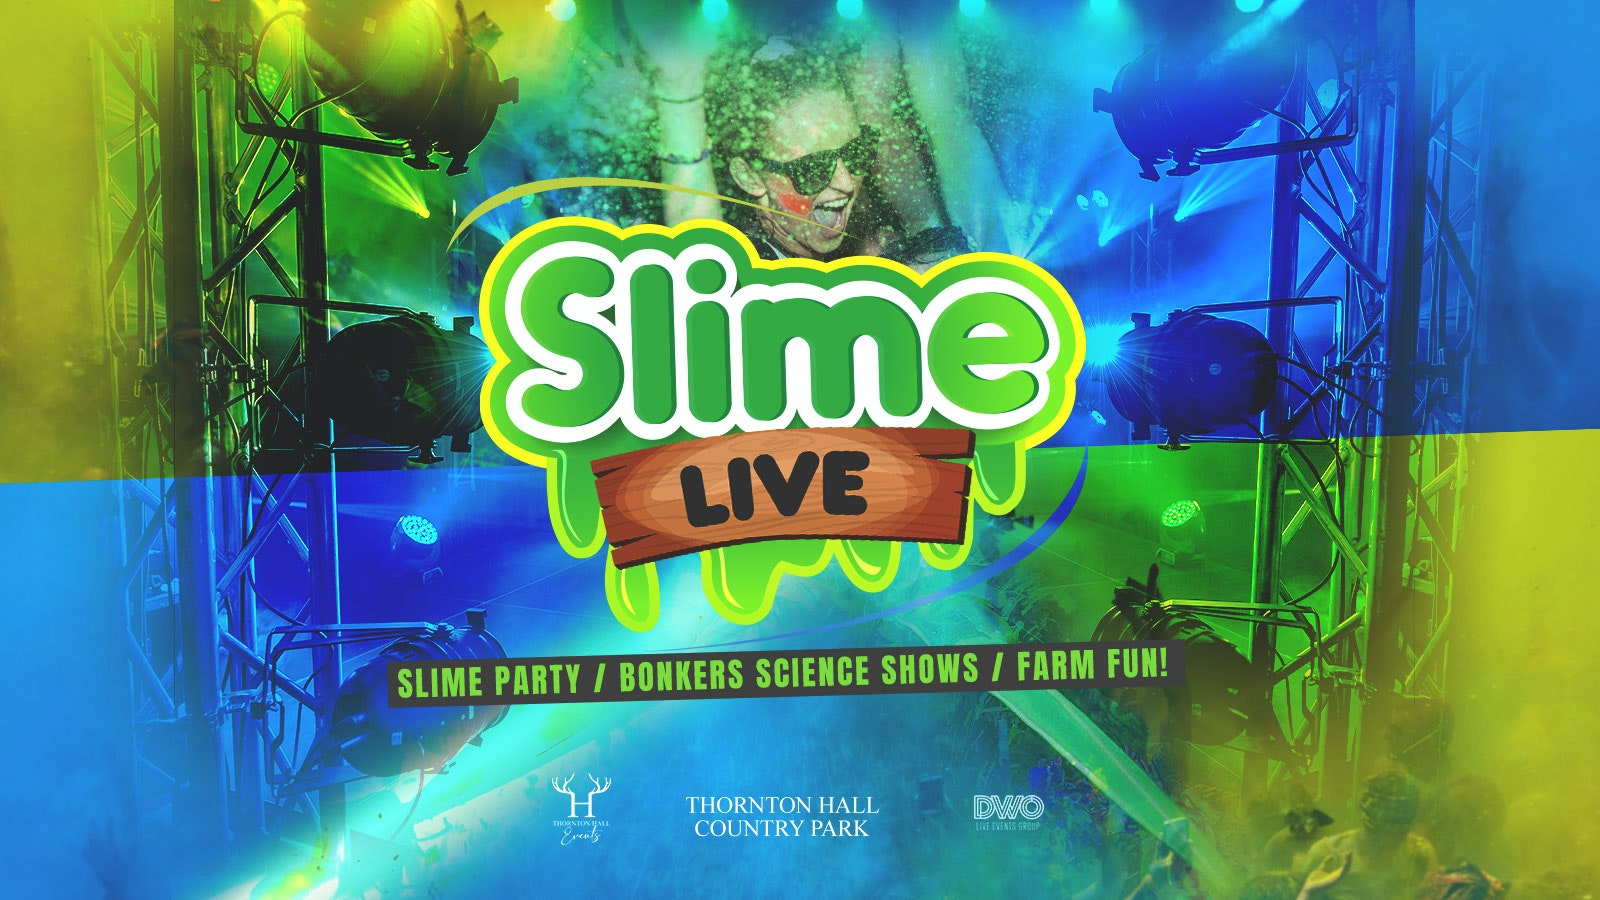 Slime Live (including Farm Park Entry) – Thursday 19th August – All Day Ticket